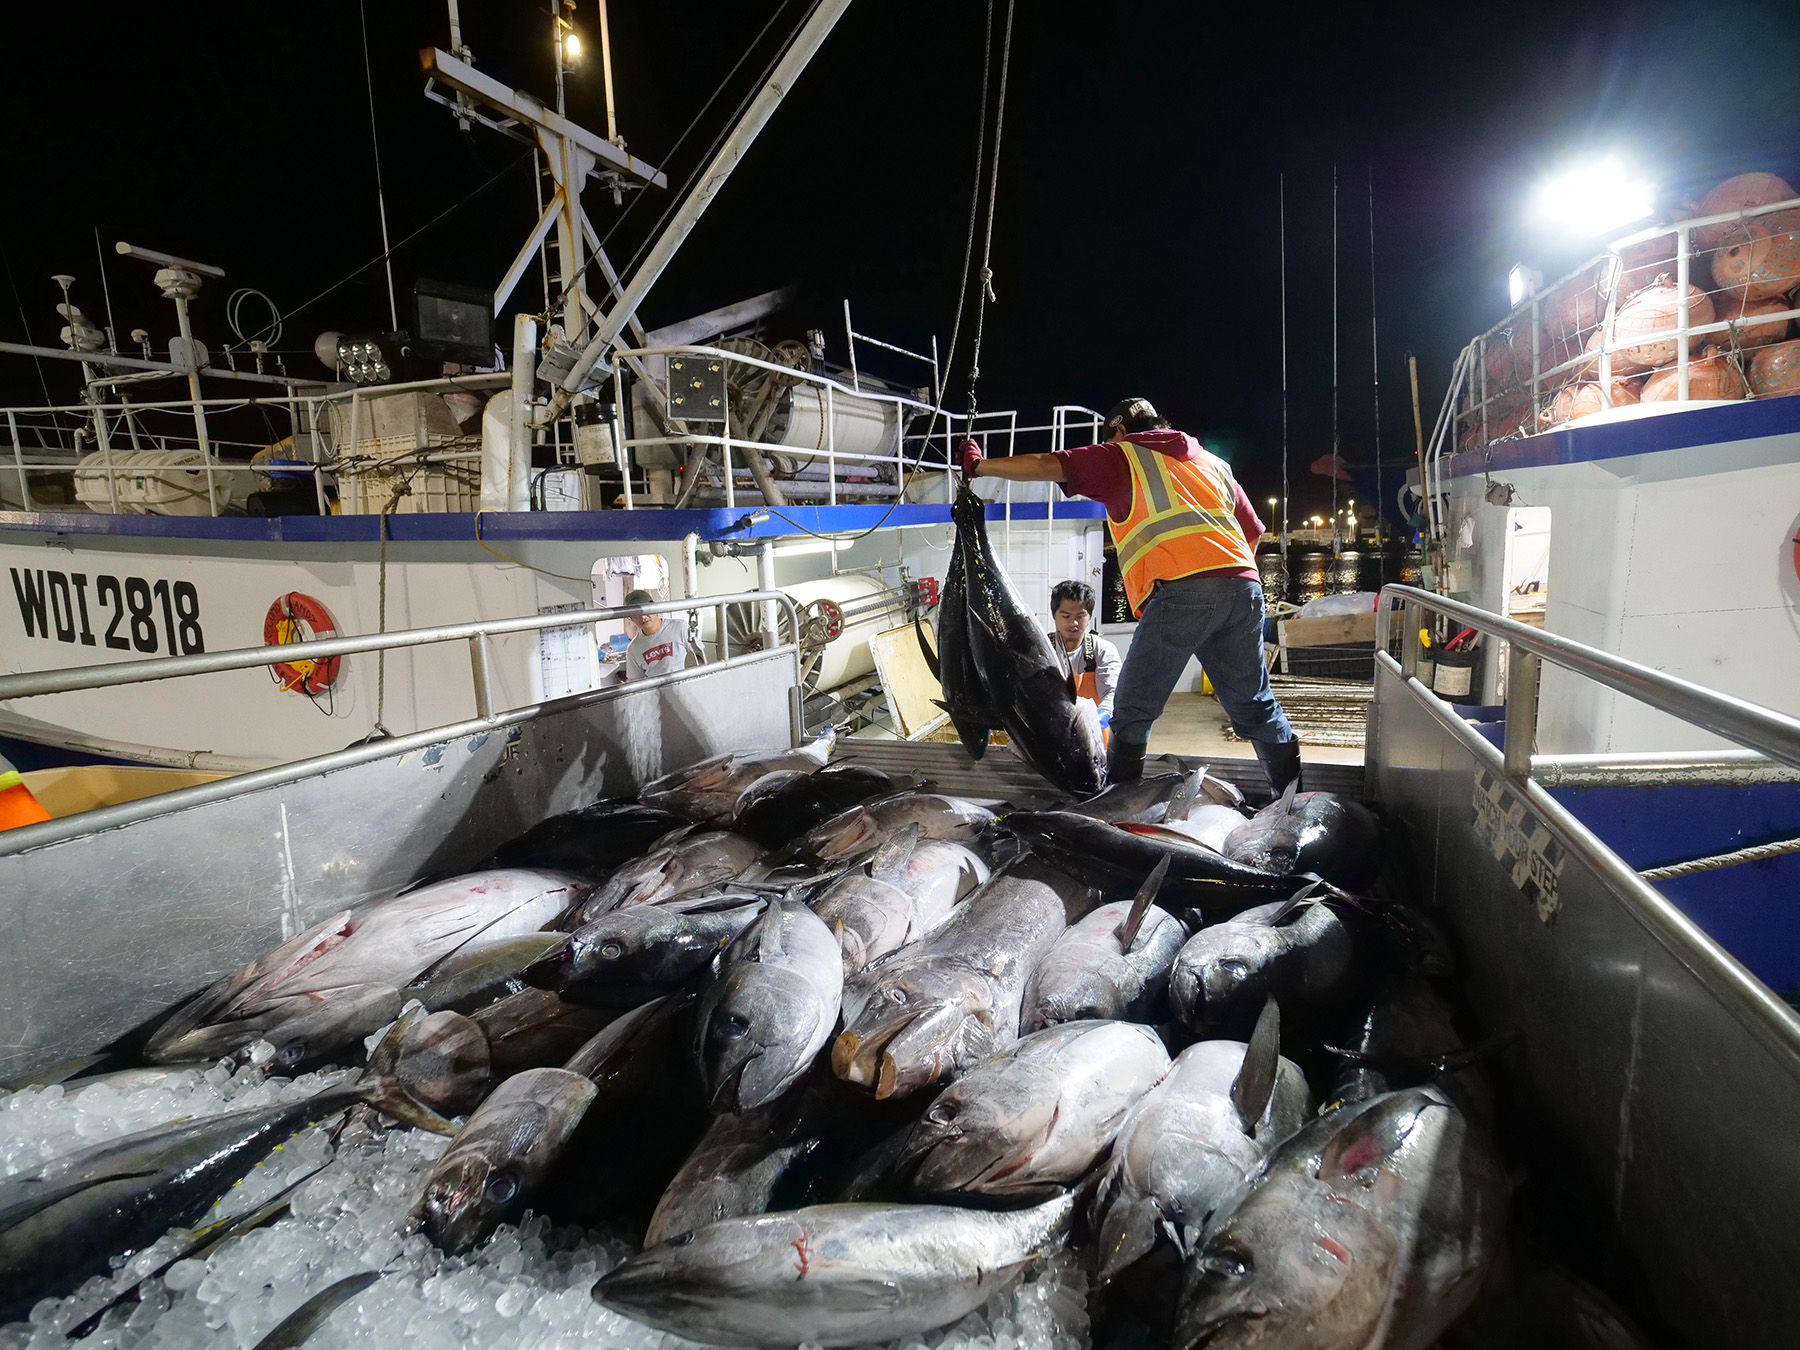 The day starts early Pier 38 where fishermen can be found six days a week unloading their fresh catches of fish to be sold at the Honolulu Fish Auction. The fish are sold same day to buyers in a competitive bidding environment. (Civil Beat photo Ronen Zilberman)